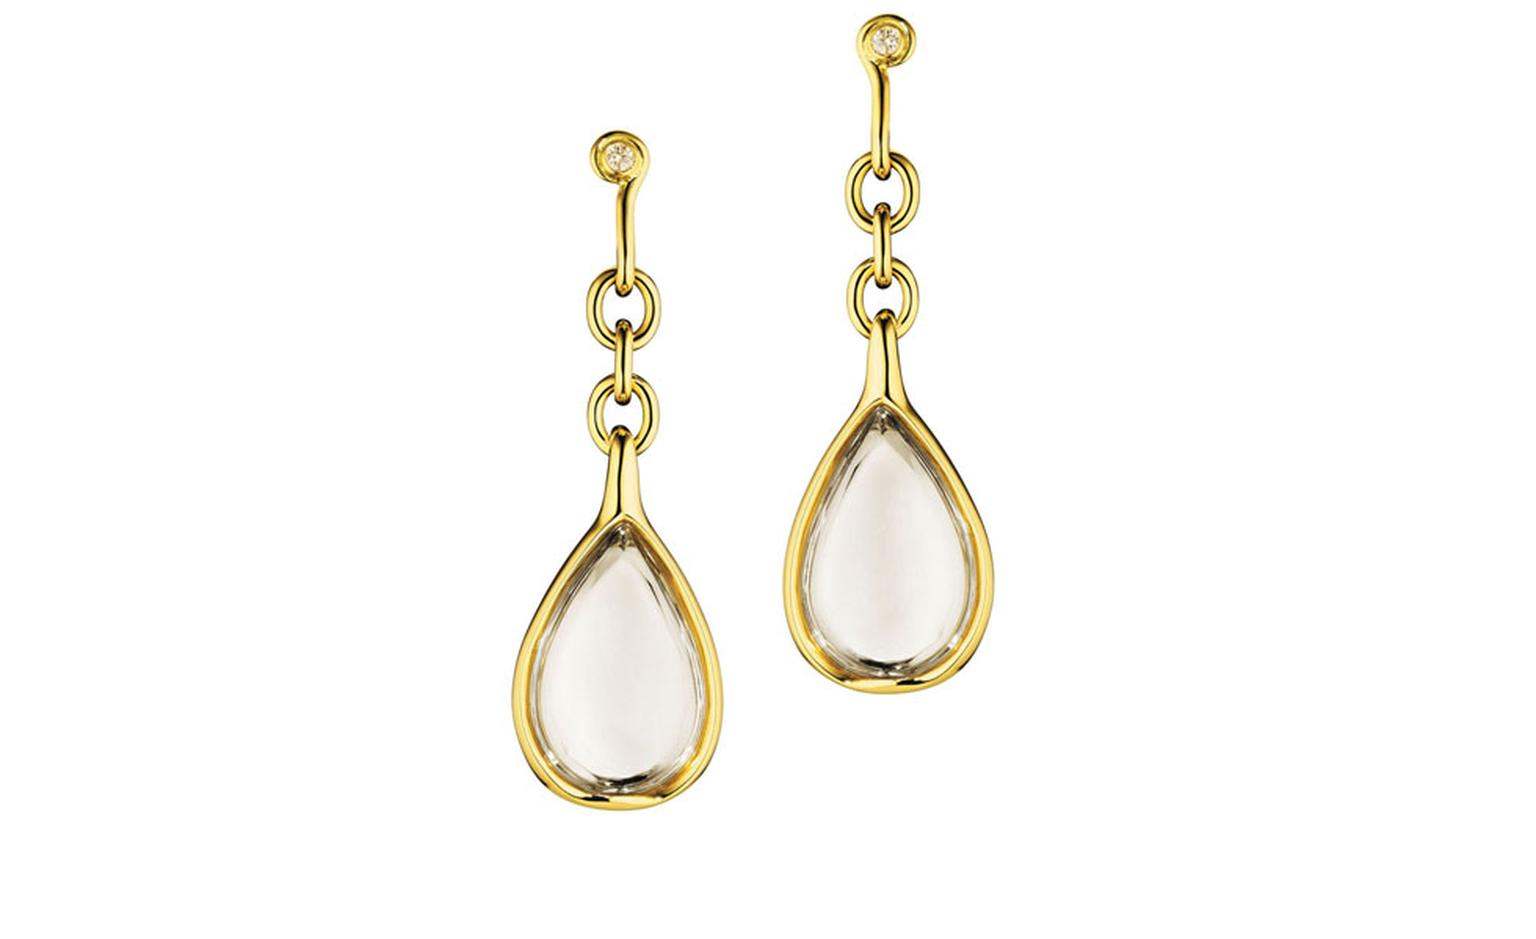 Diane von Furstenberg by H Stern. Sutras big Earrings in yellow gold, rock crytals and diamonds. £6000